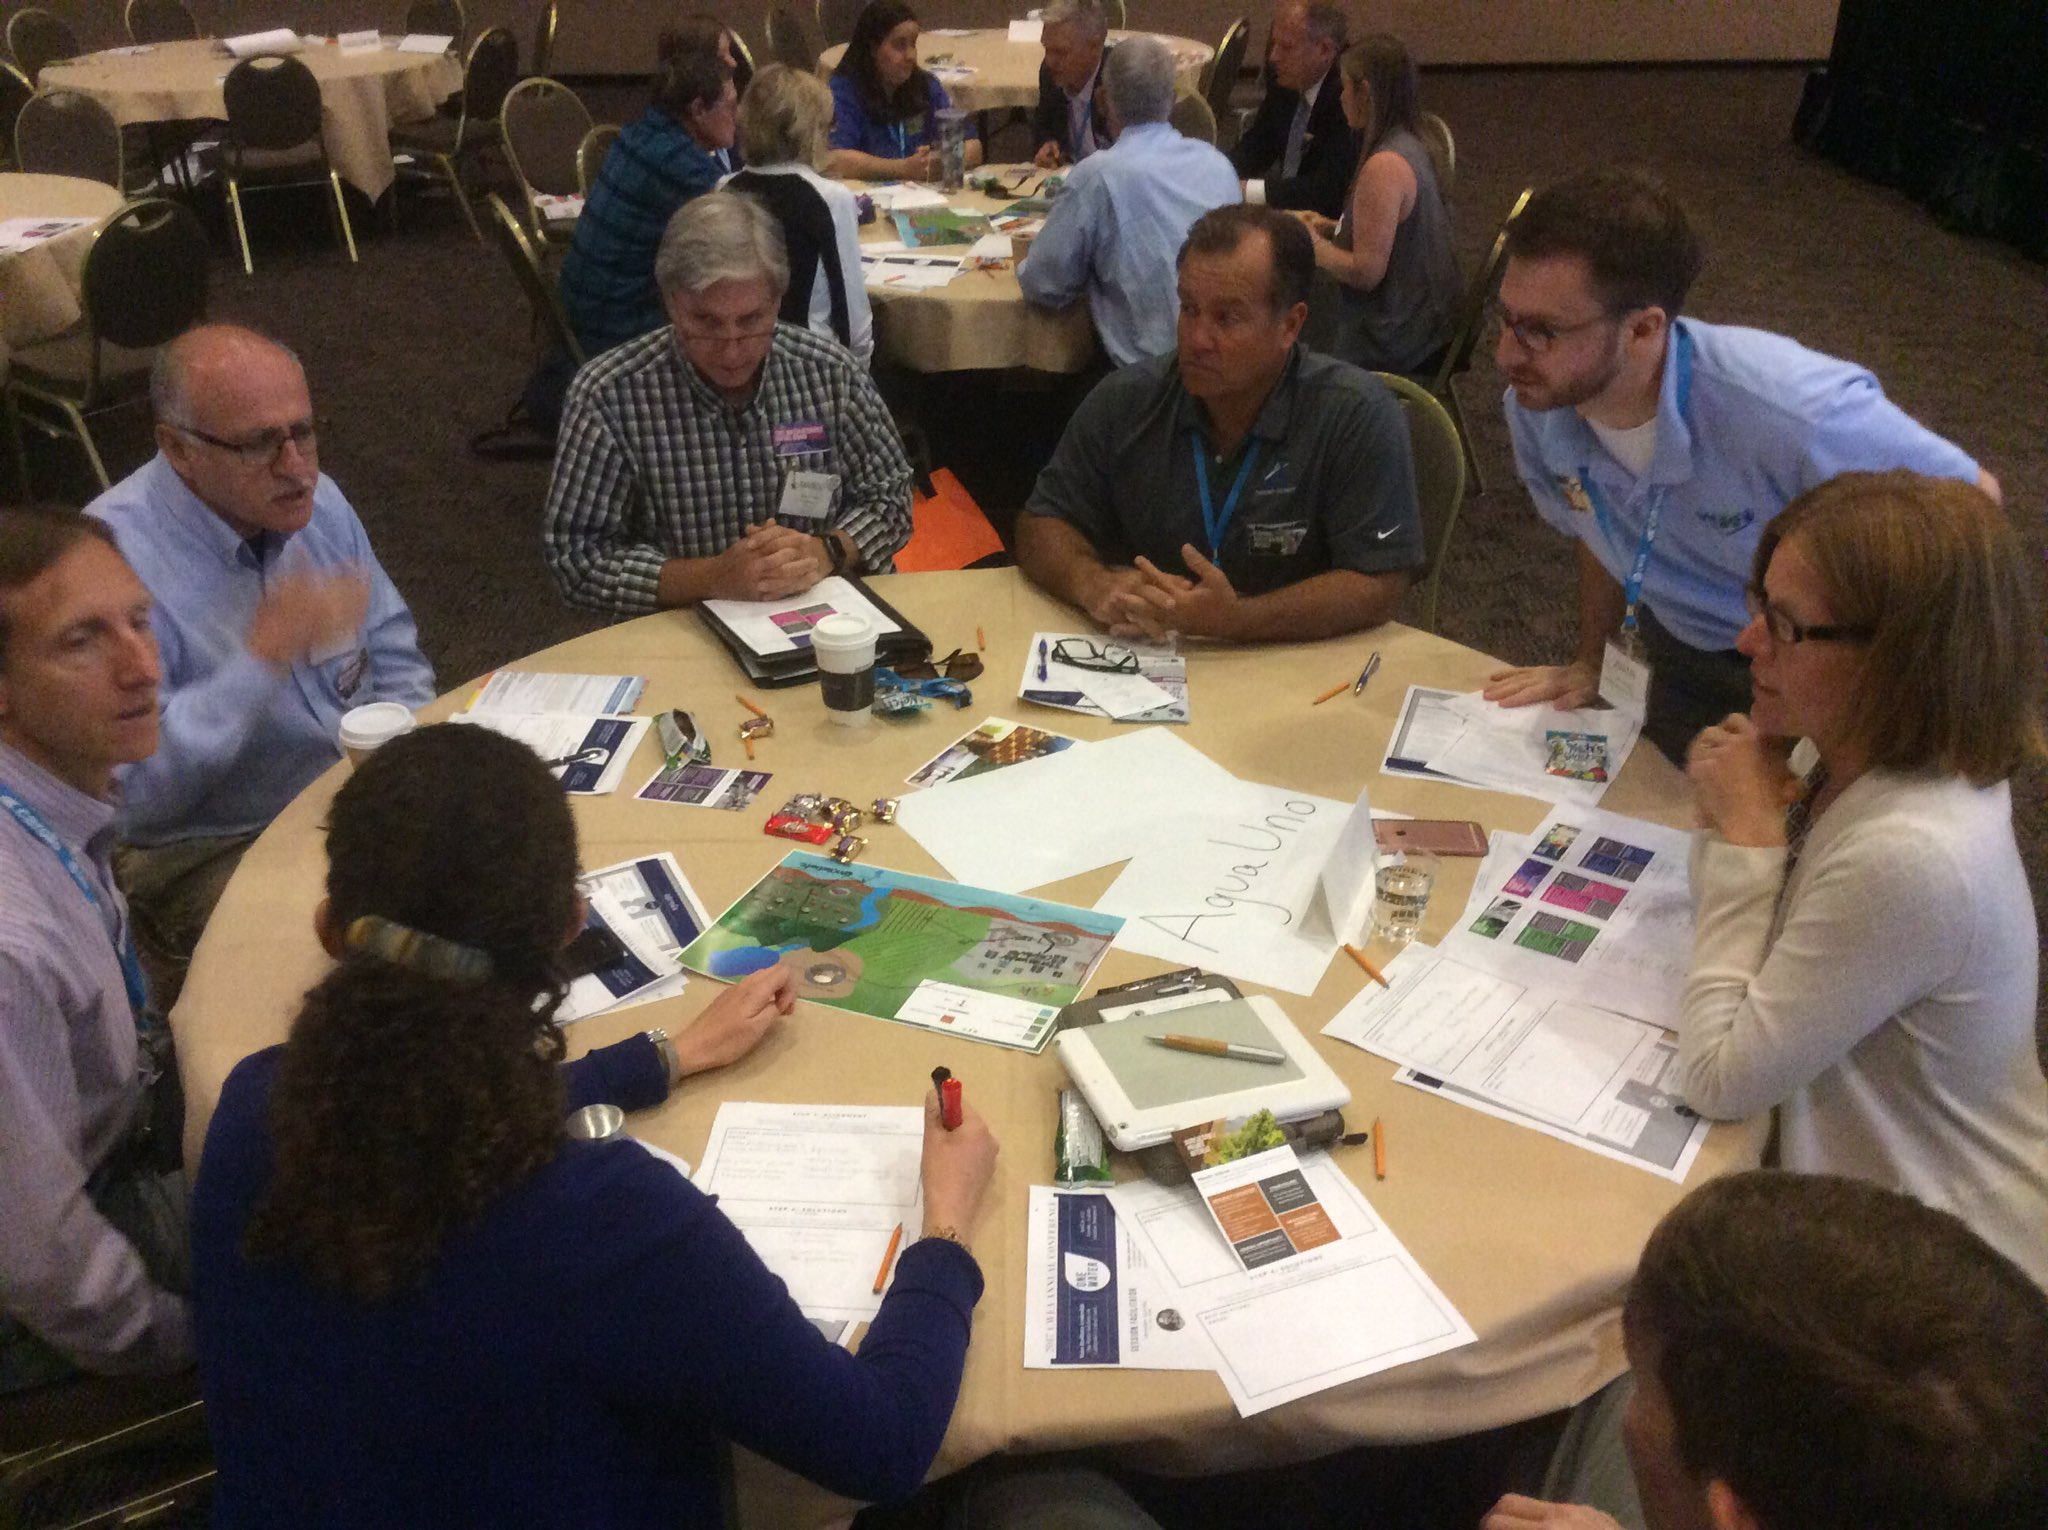 Aqu Uno, CA holds multi agency meeting to solve water issues #OneWaterCWEA #CWEAAC https://t.co/DGSV2WHR9D